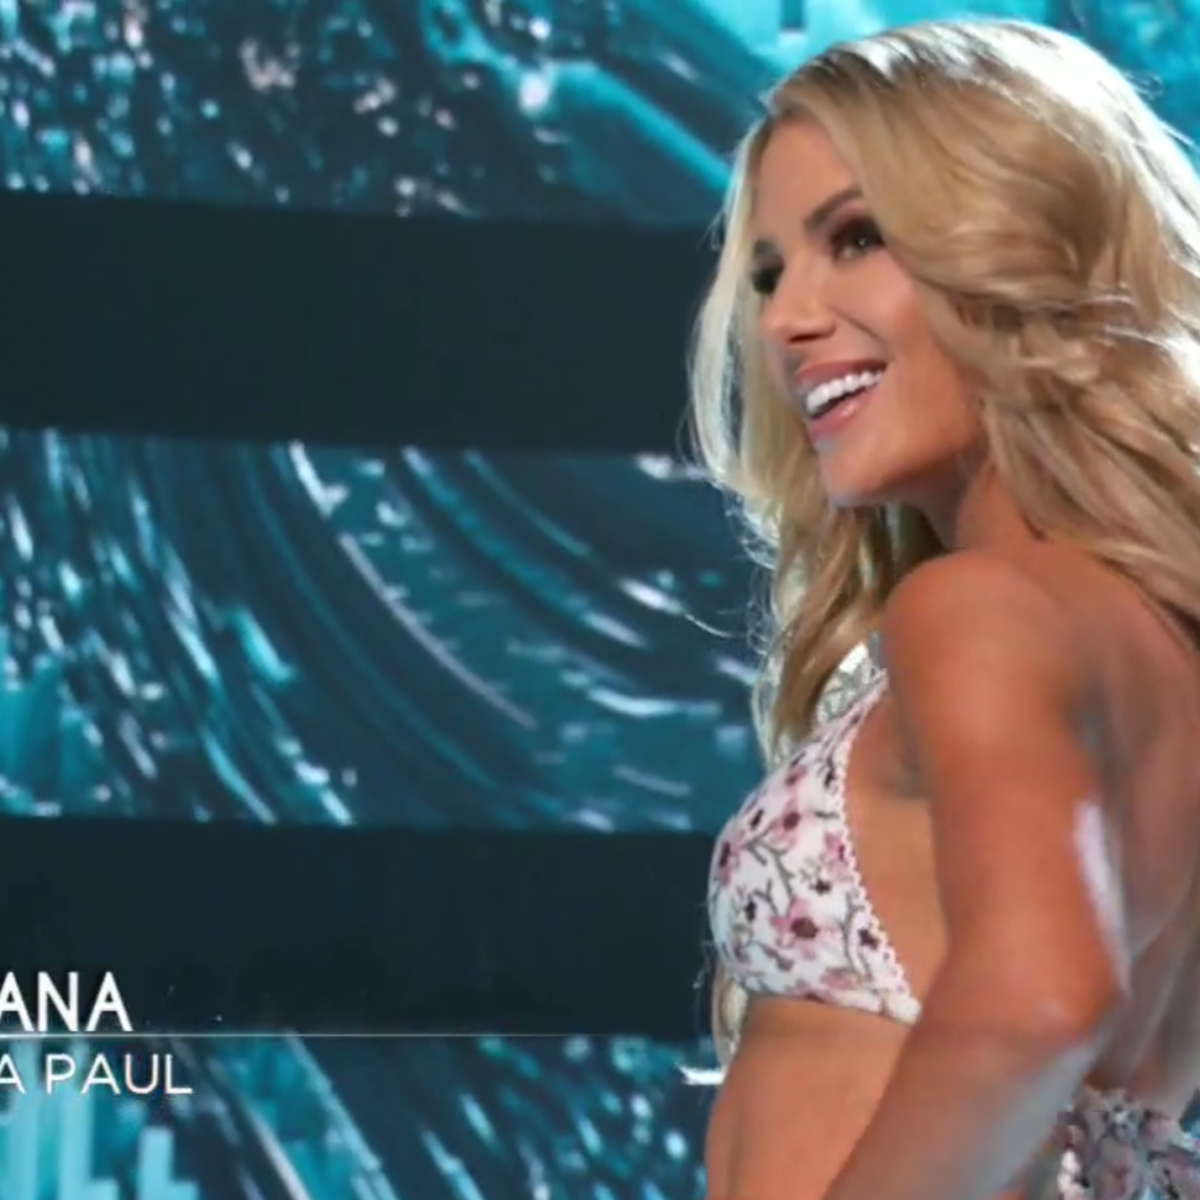 Miss USA Swimsuit Competition 2019: See All the Stunning